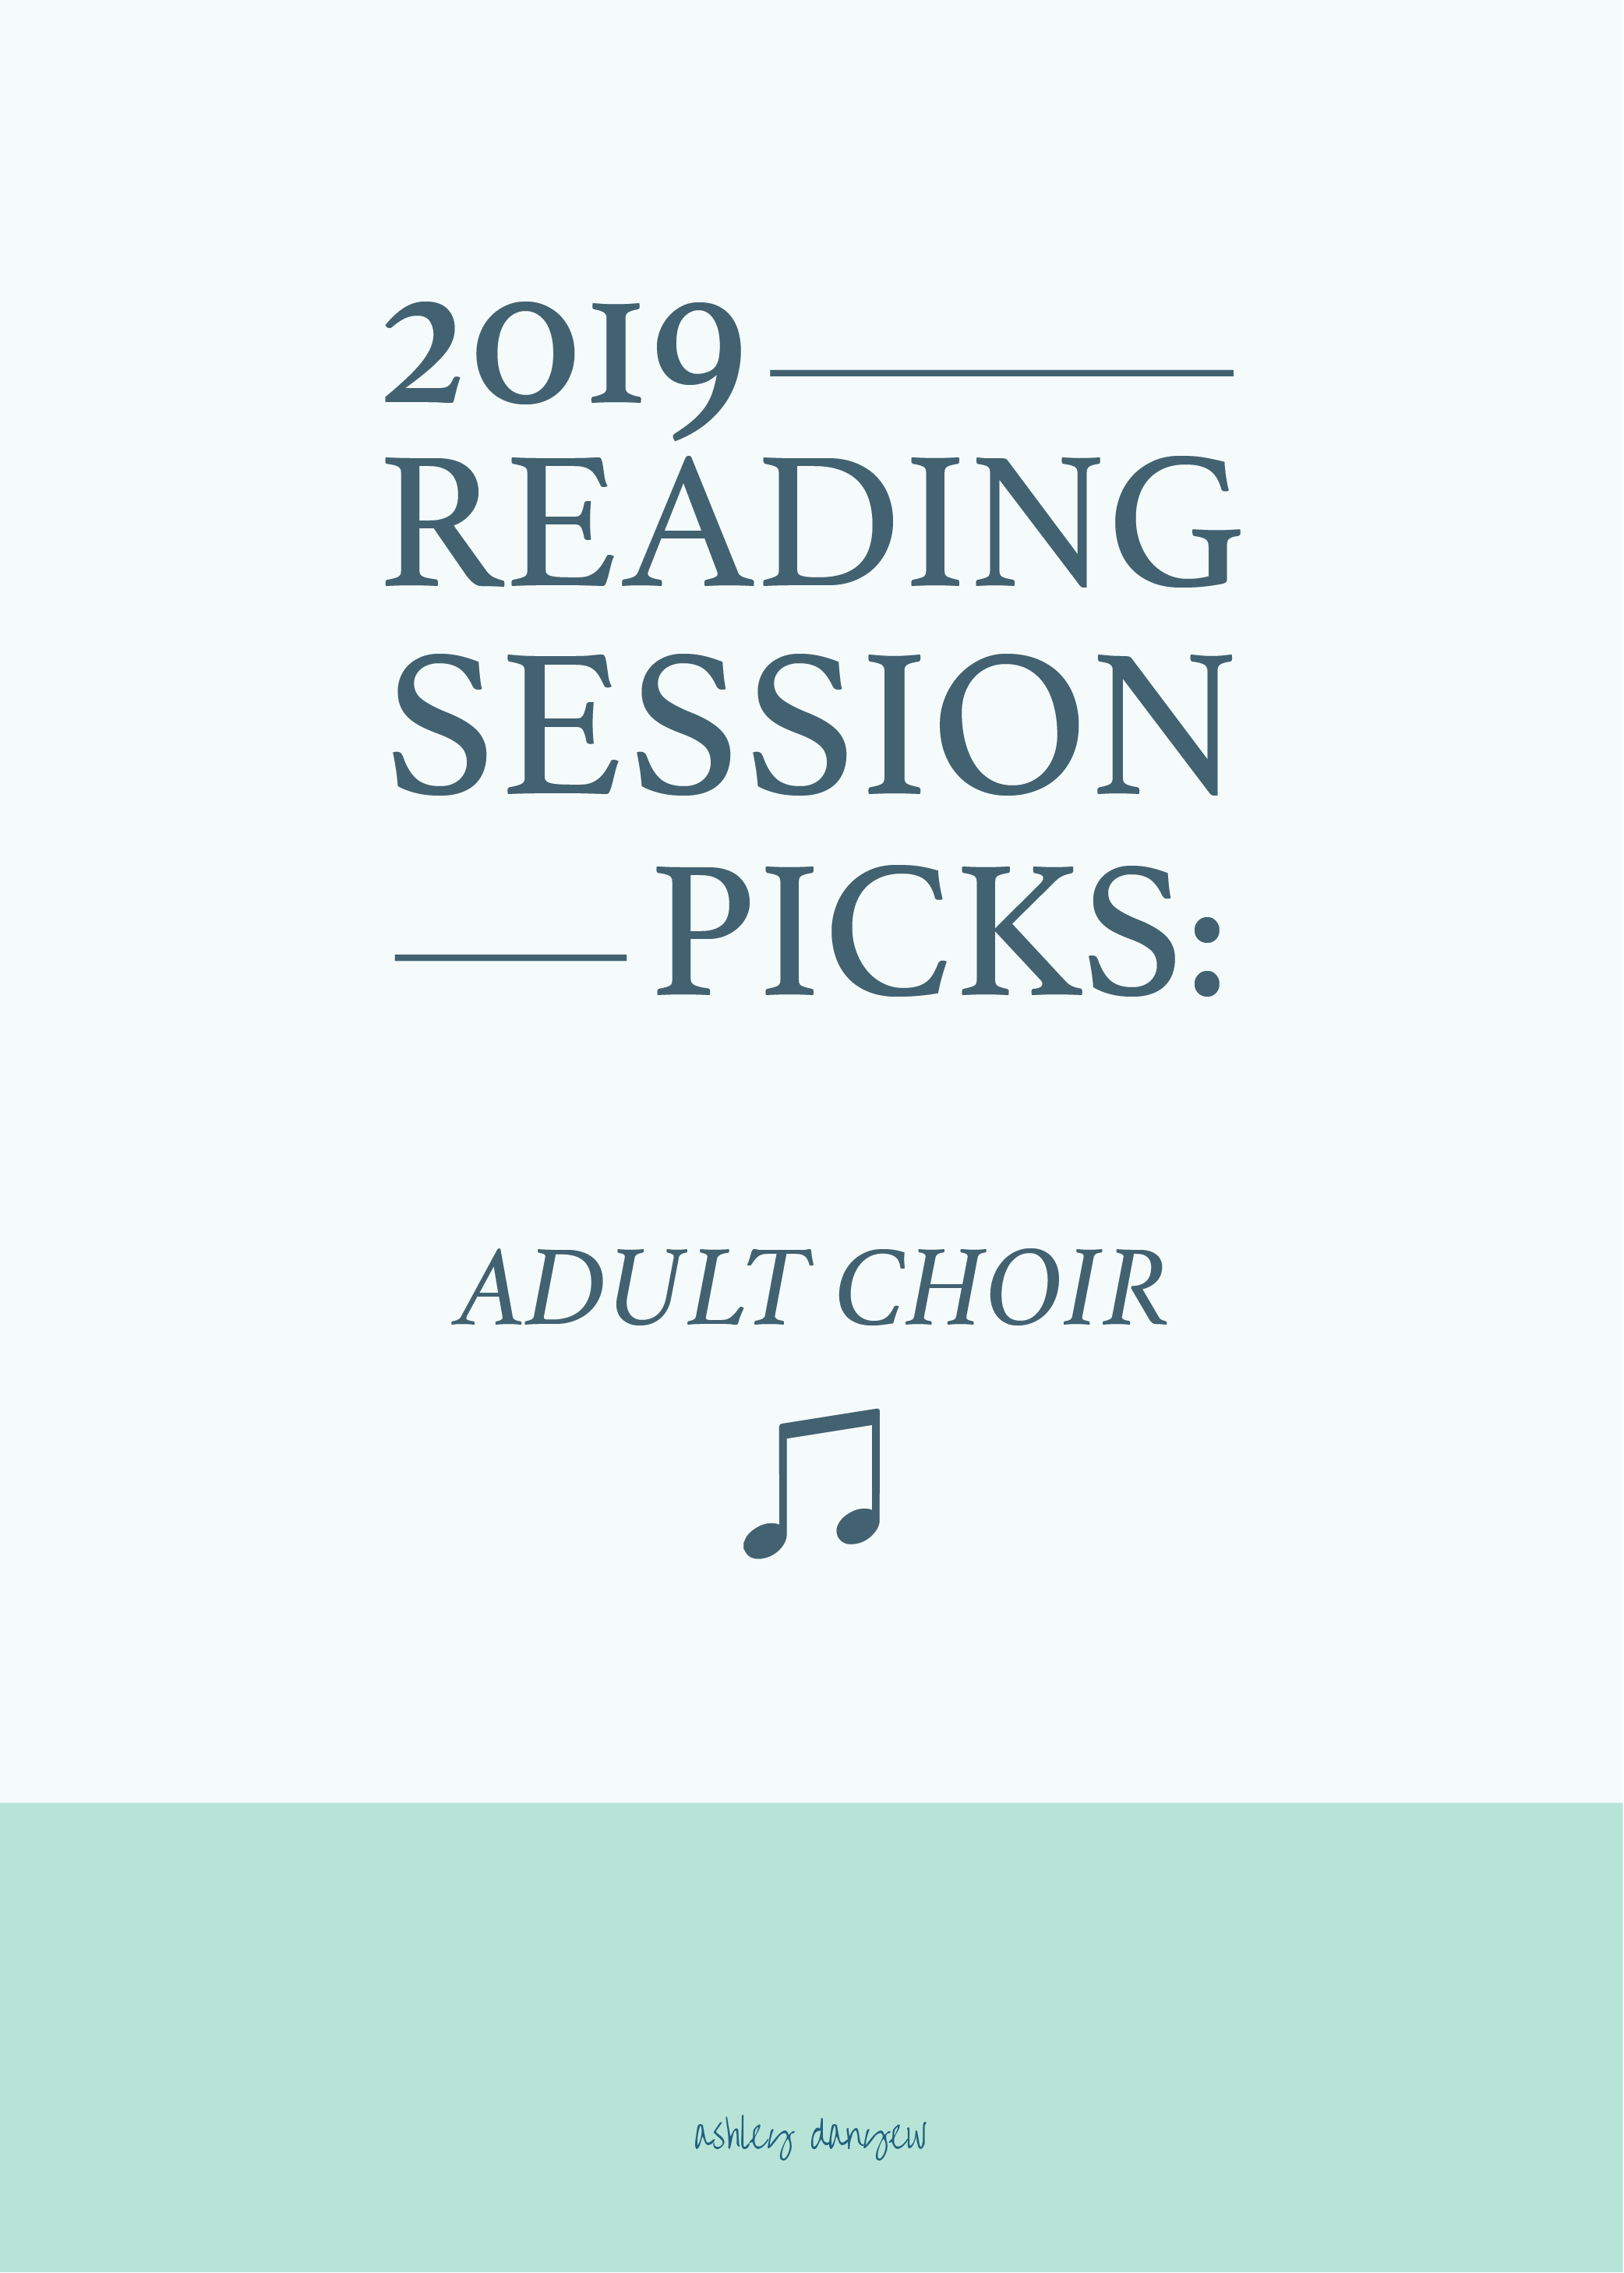 2019 Reading Session Picks: Adult Choir